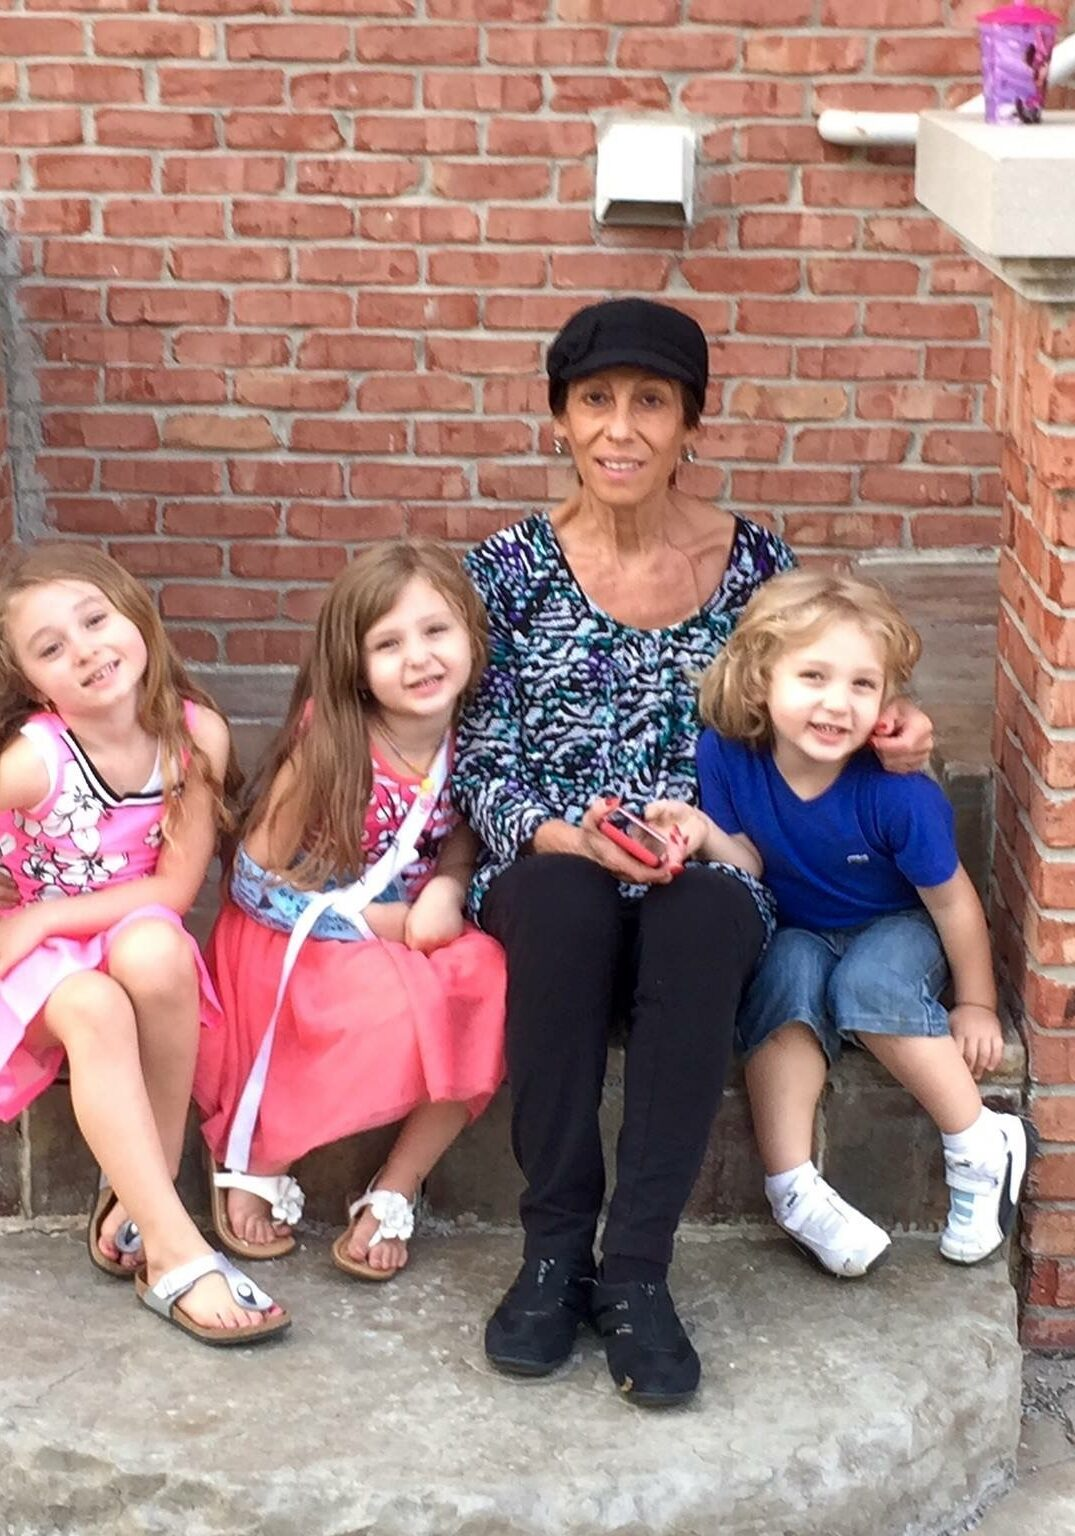 mom and kids on porch